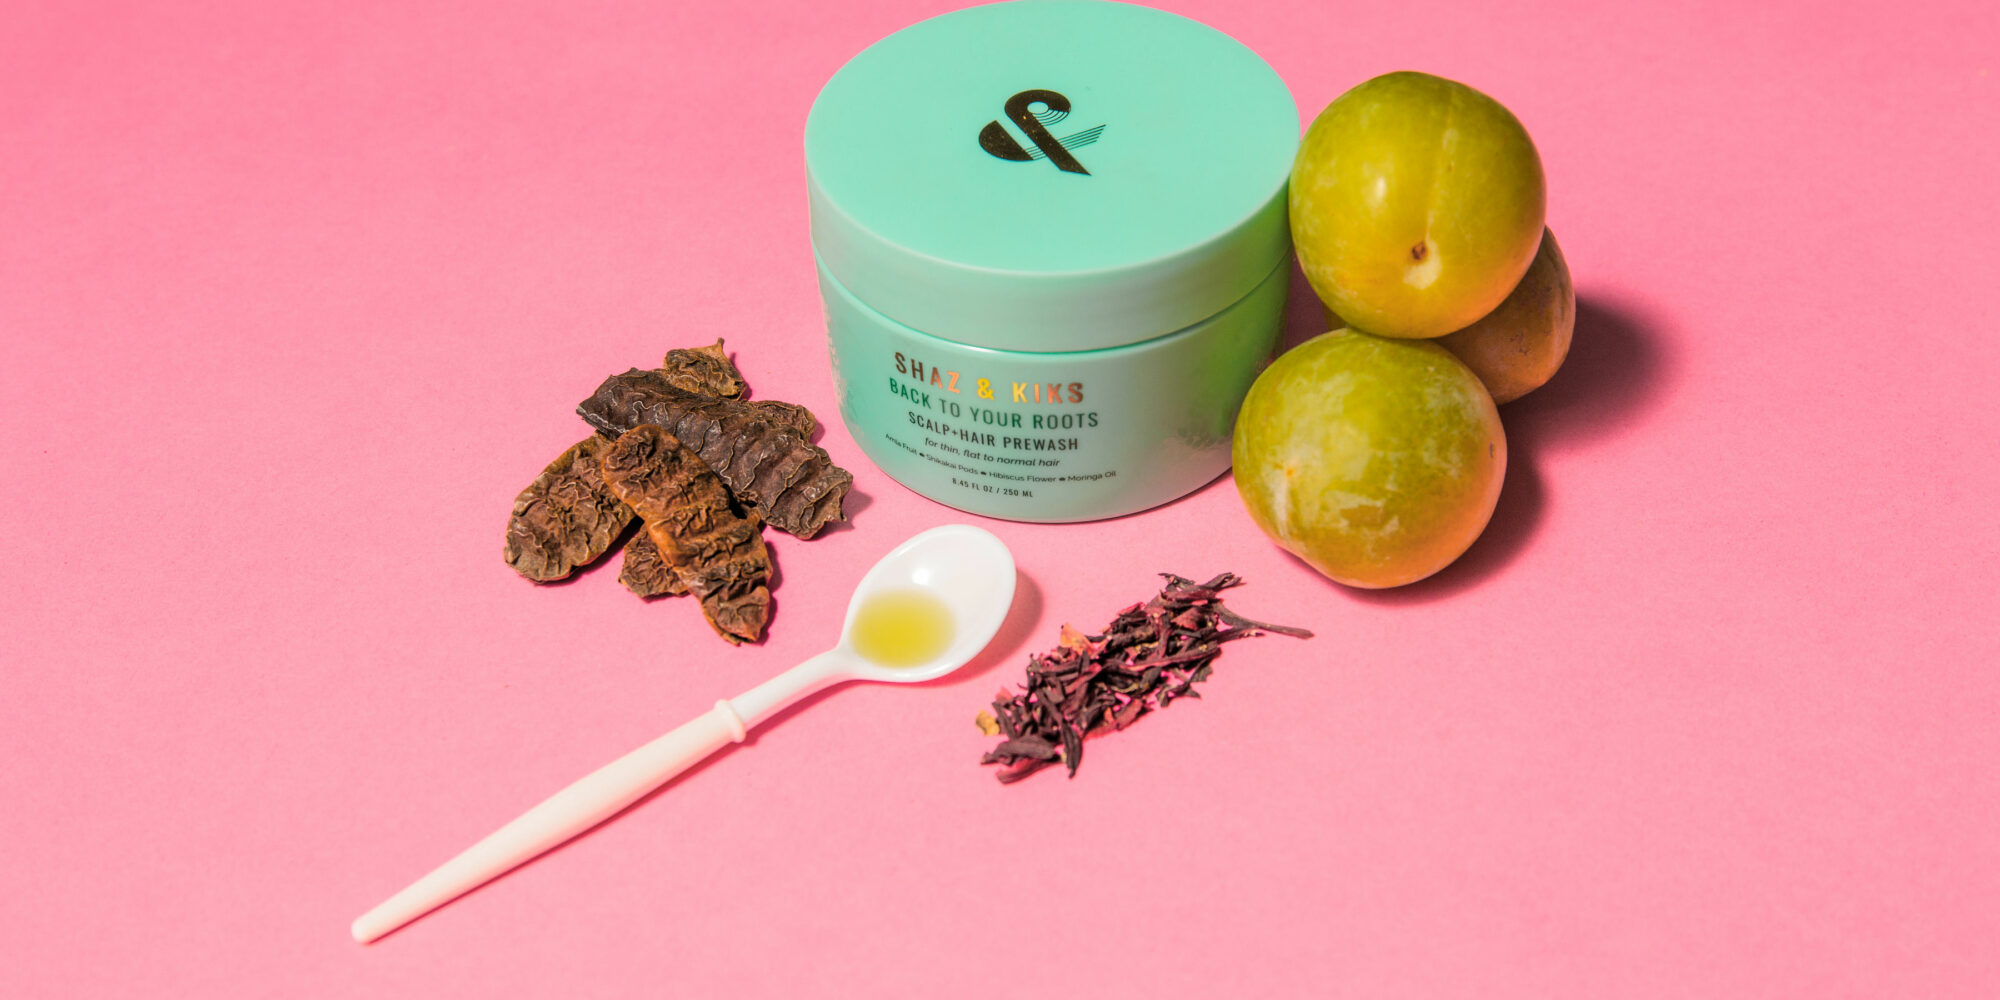 Clean Haircare Brand Shaz & Kiks Puts A Modern Spin On The Ancient Practice Of Hair-Oiling